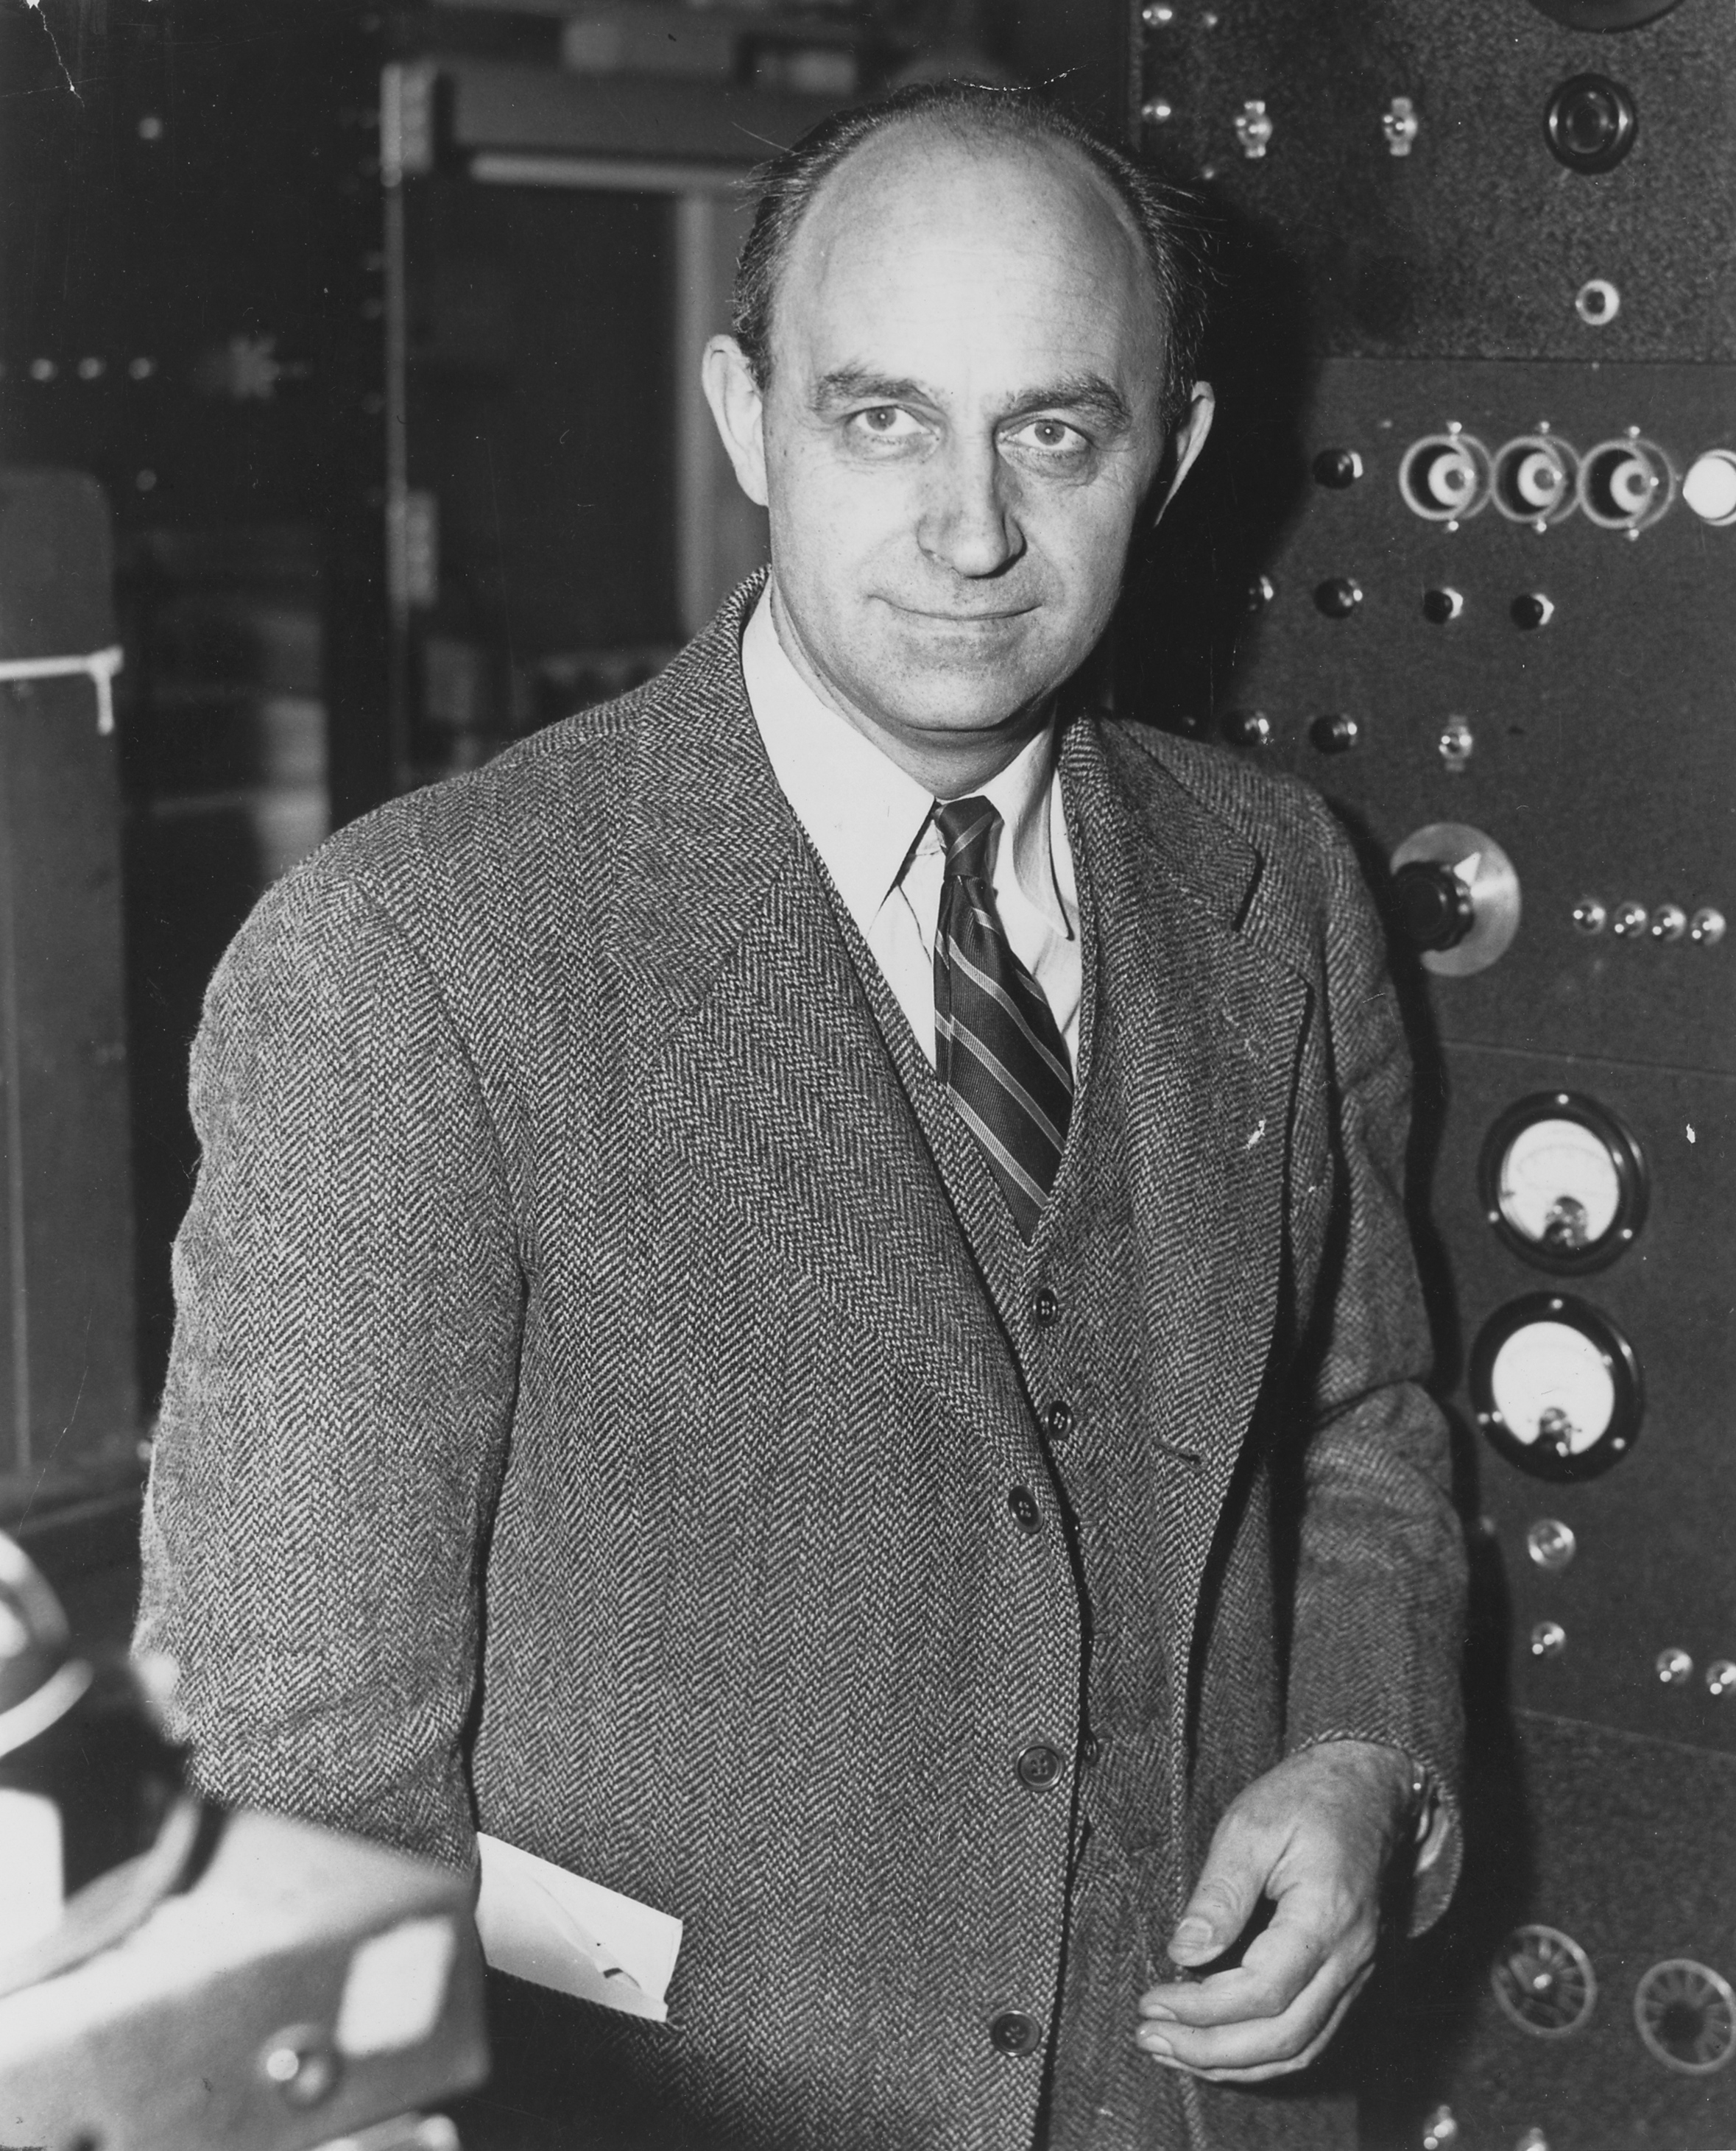 Fermi in the 1940's